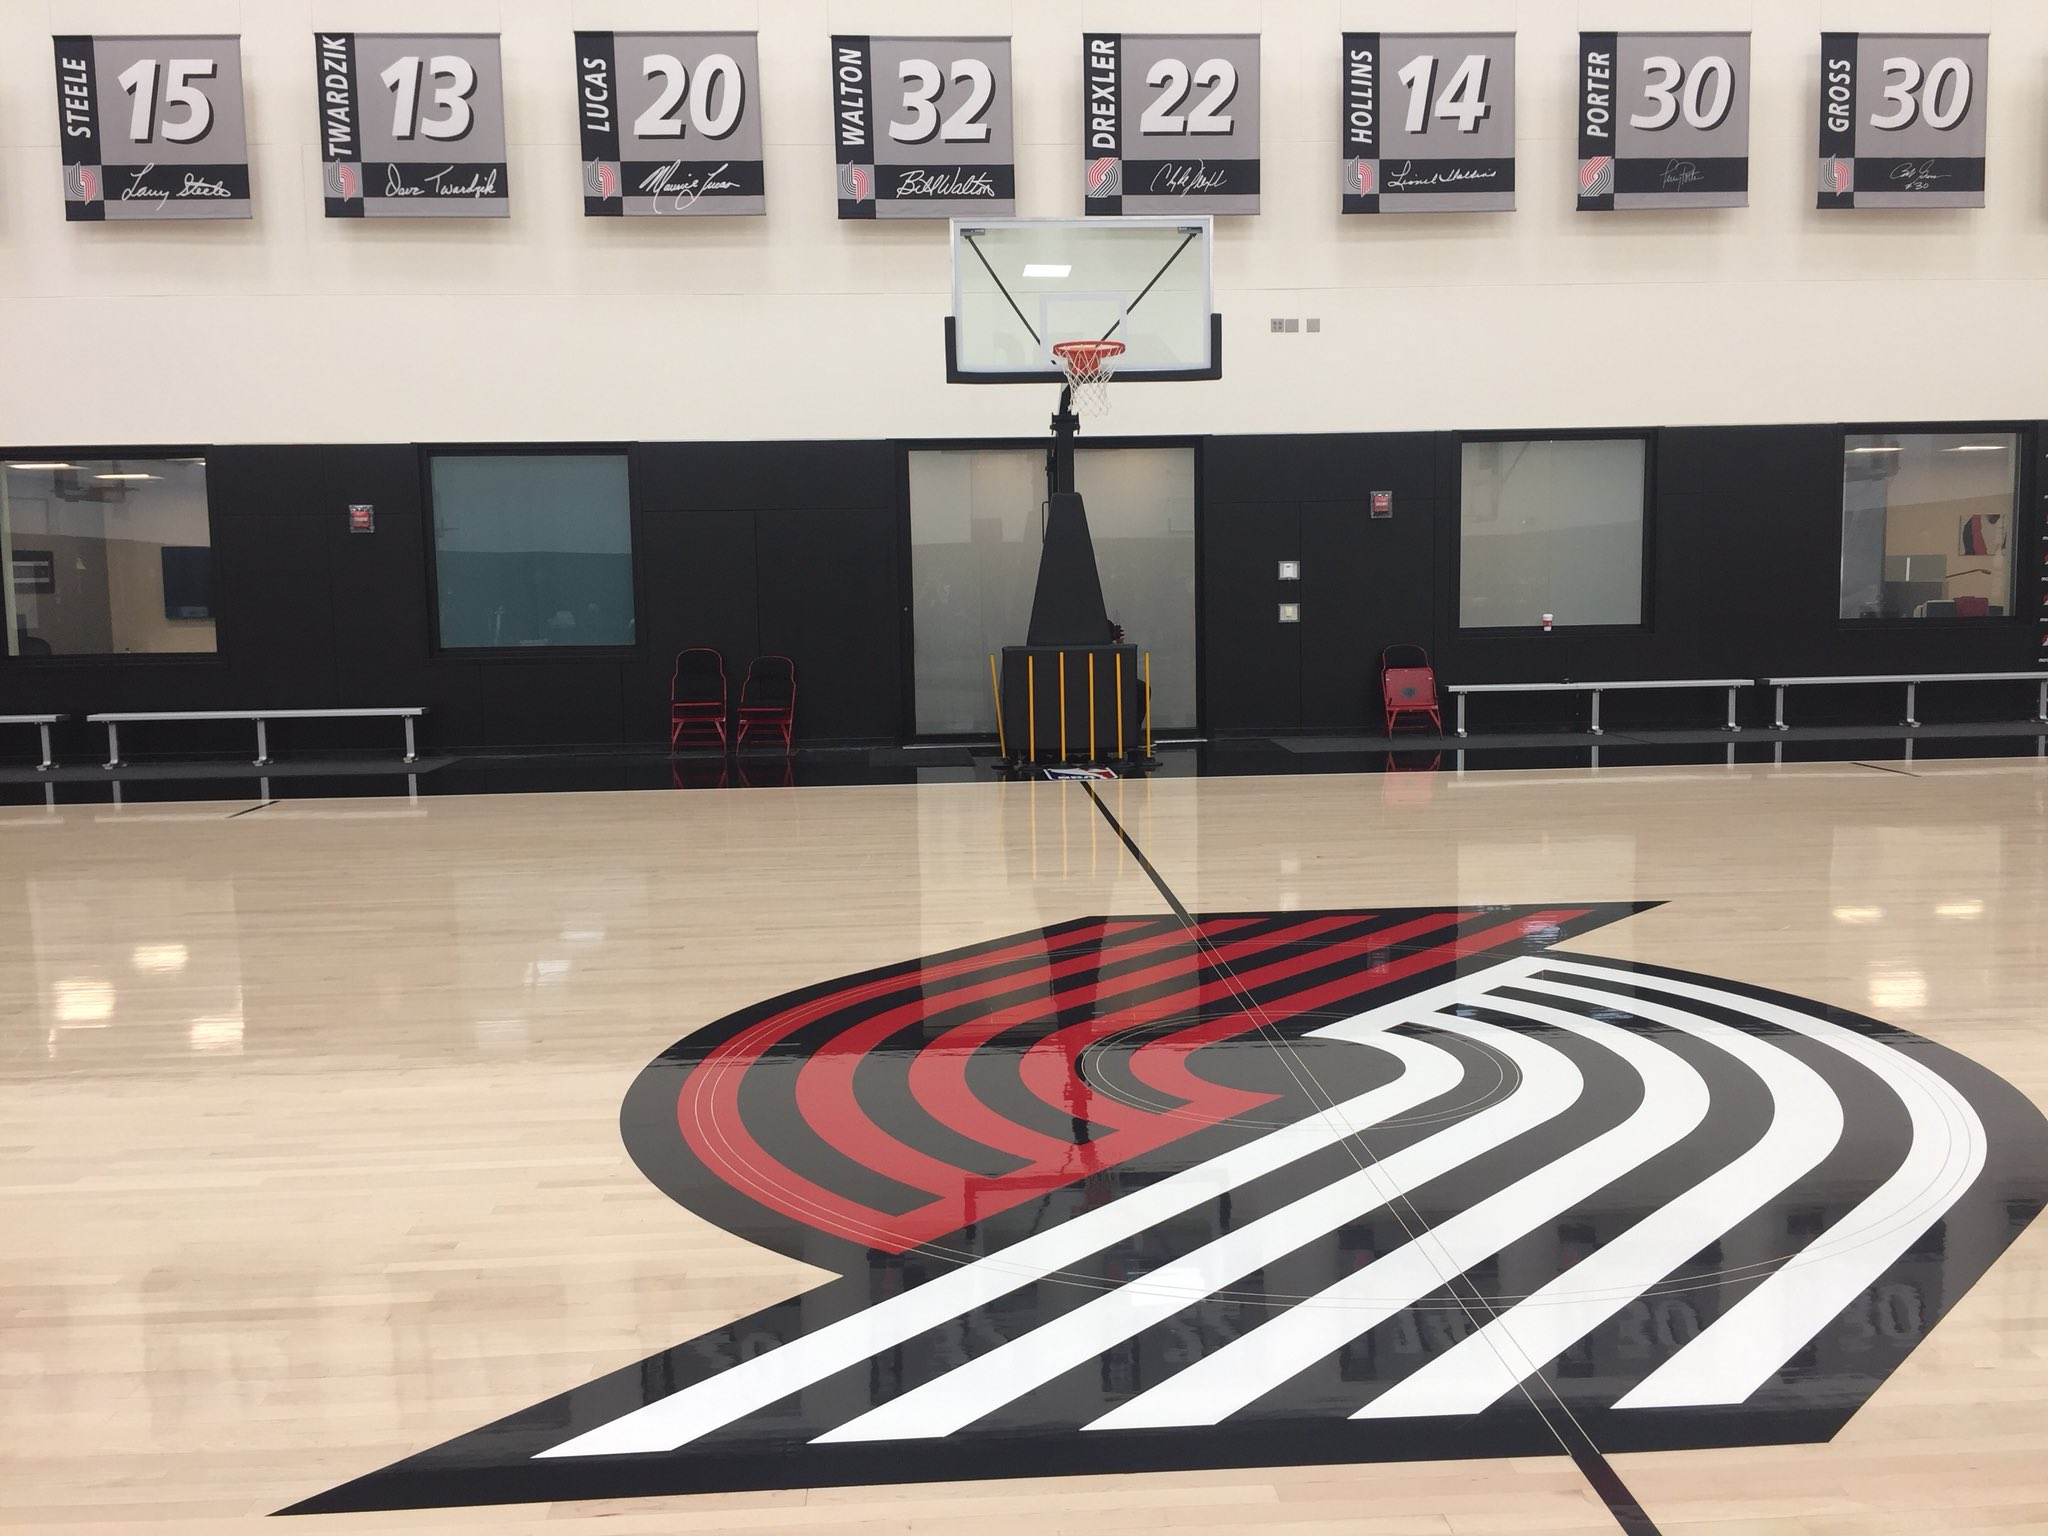 Live from Portland practice with the @trailblazers... 13-11, 5th place in the West! #TrailBlazersAllAccess #RipCity https://t.co/7JnEaOF1y4